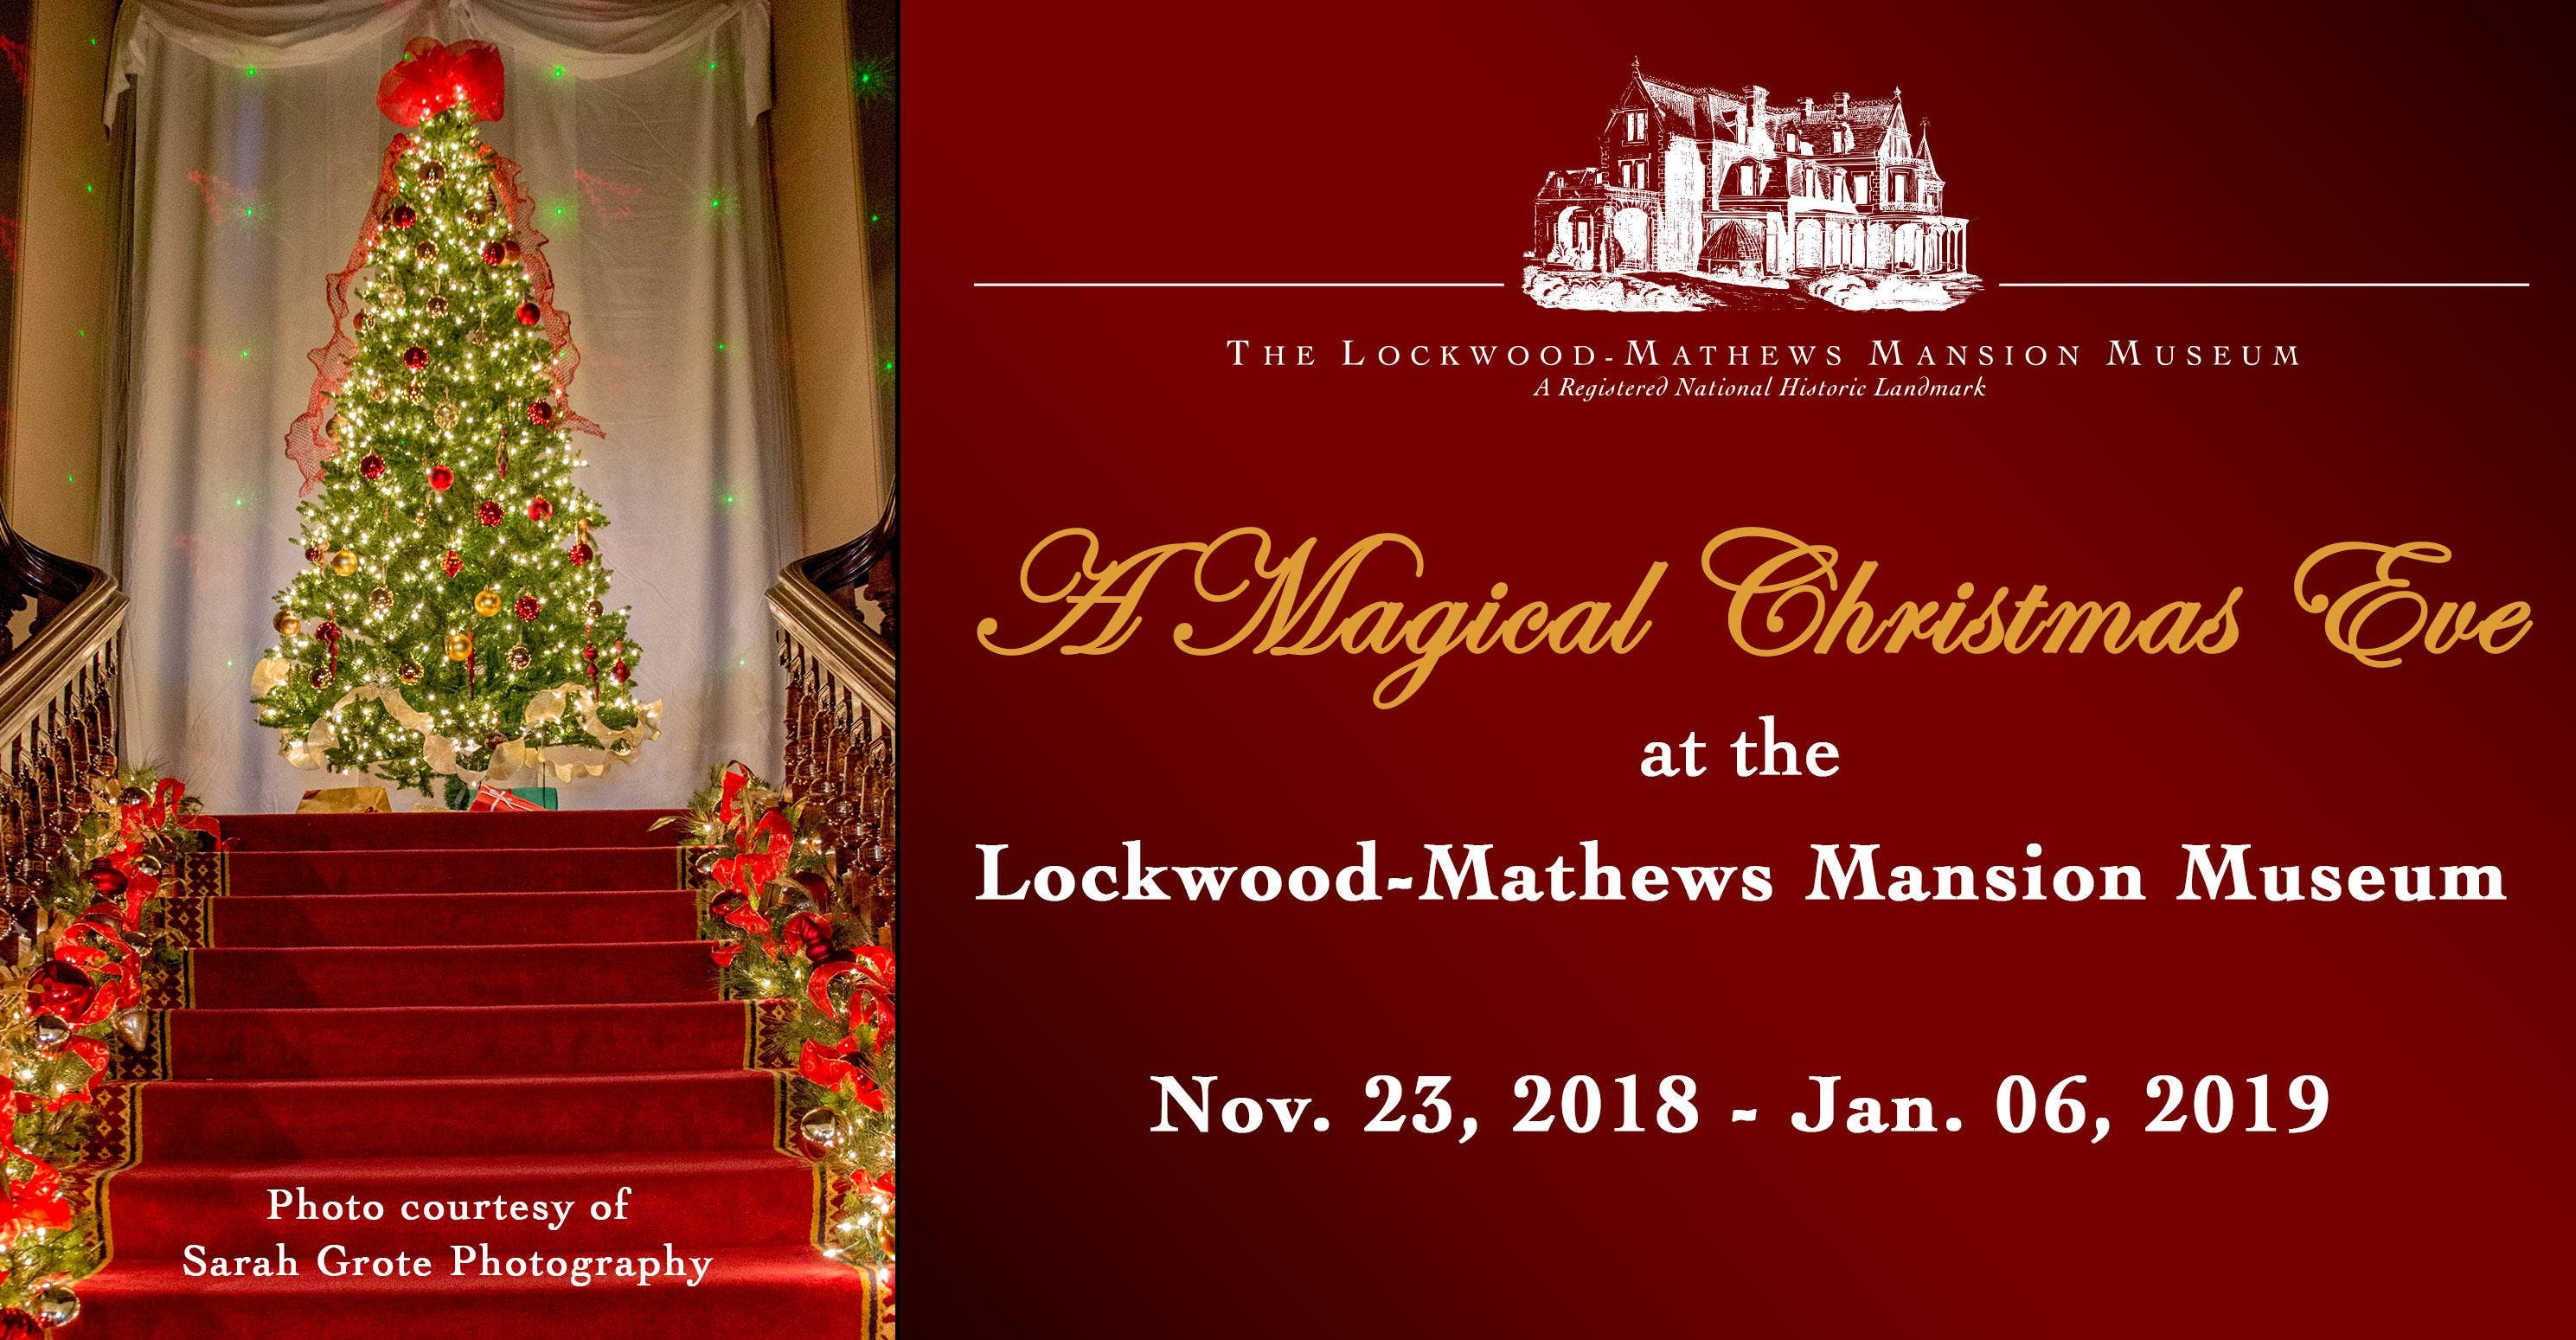 Christmas Eve 2019.3 00 P M A Magical Christmas Eve At The Lockwood